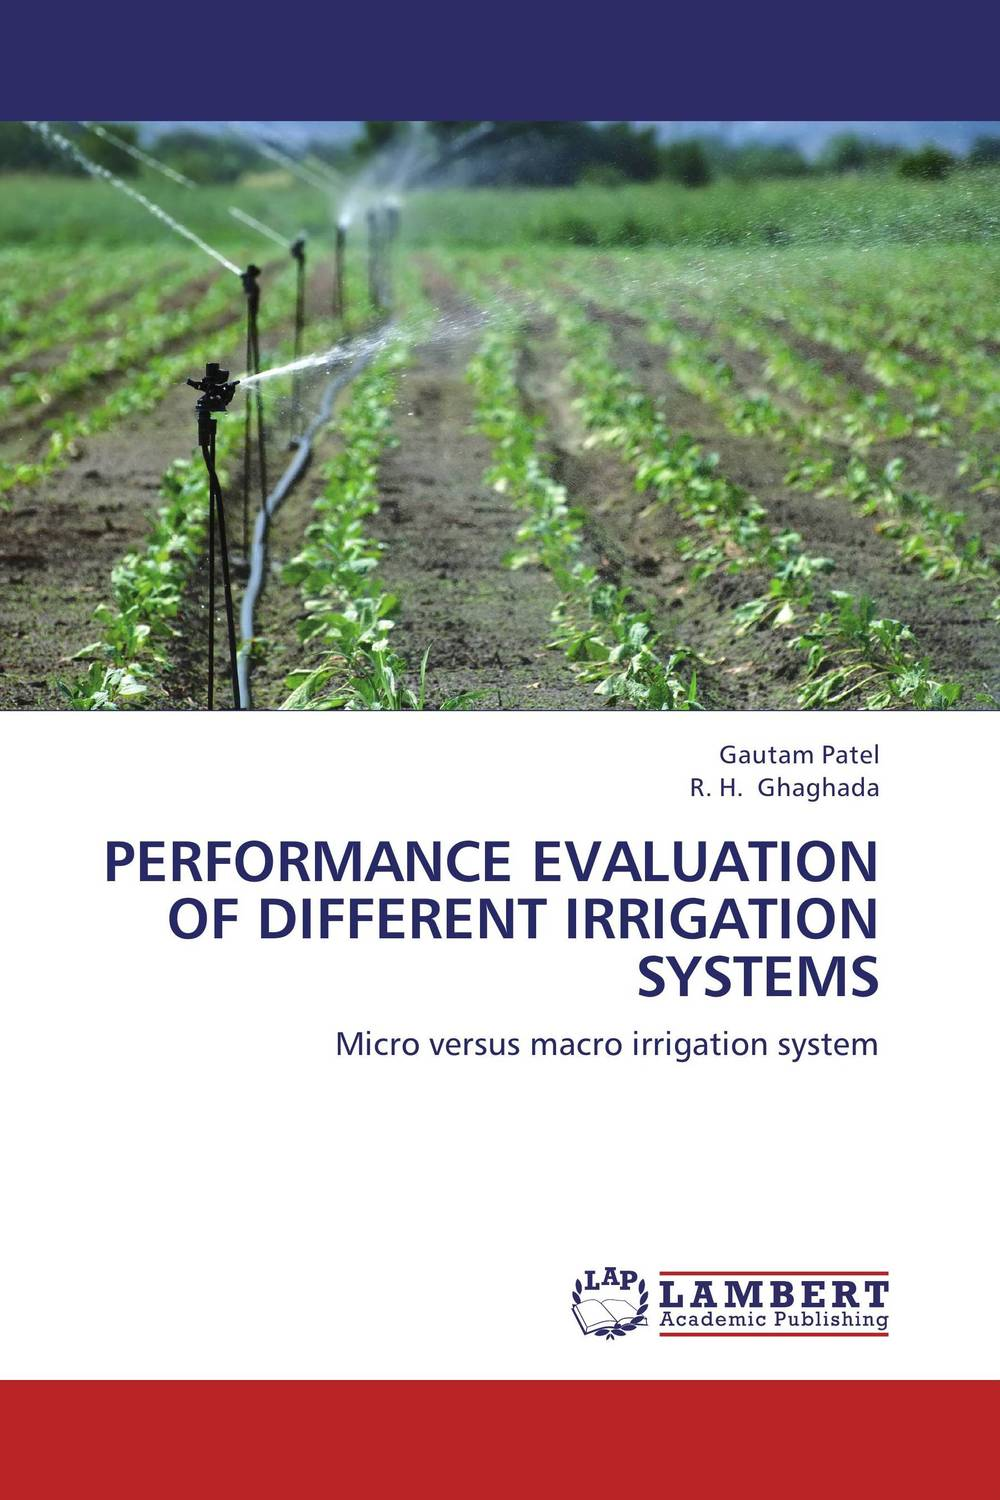 купить Performance Evaluation of Different Irrigation Systems недорого